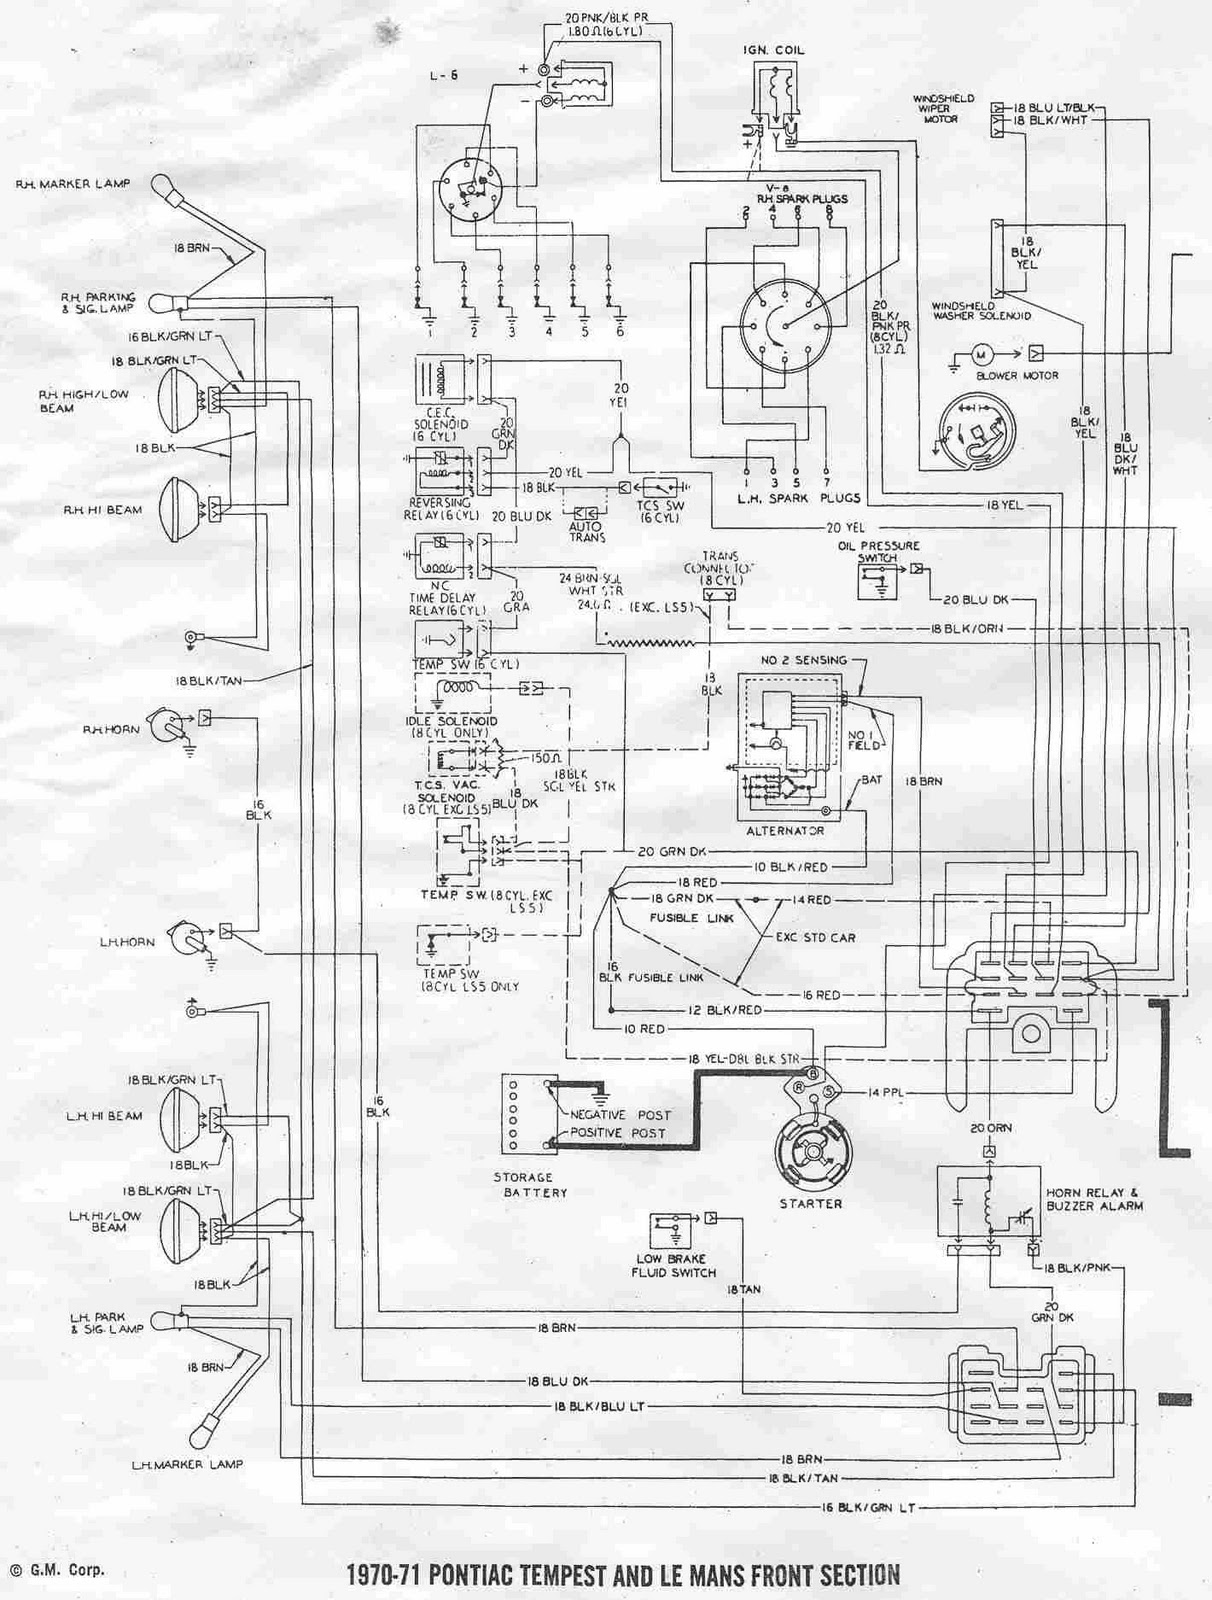 hornet alarm wire diagram